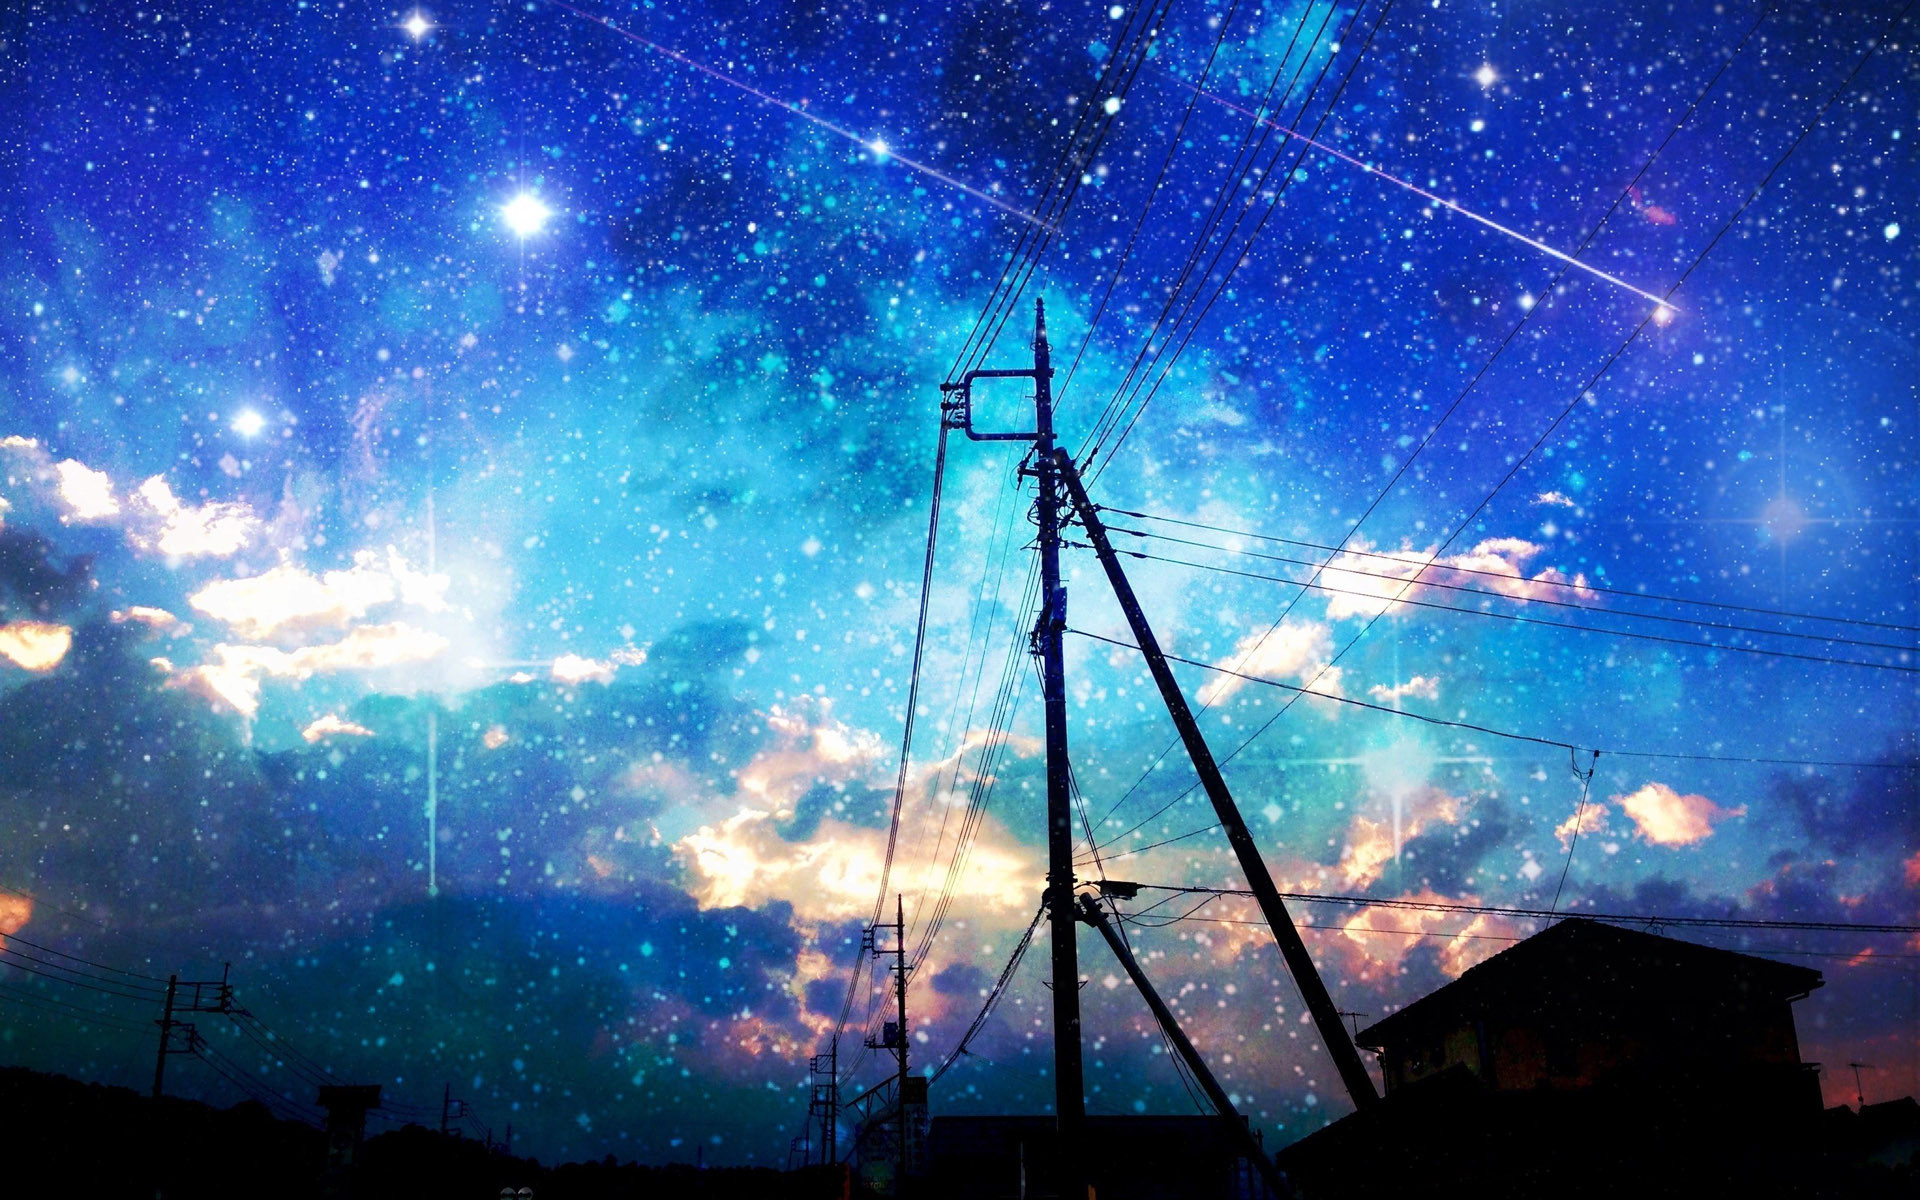 Starry Sky wallpapers (45 Wallpapers)